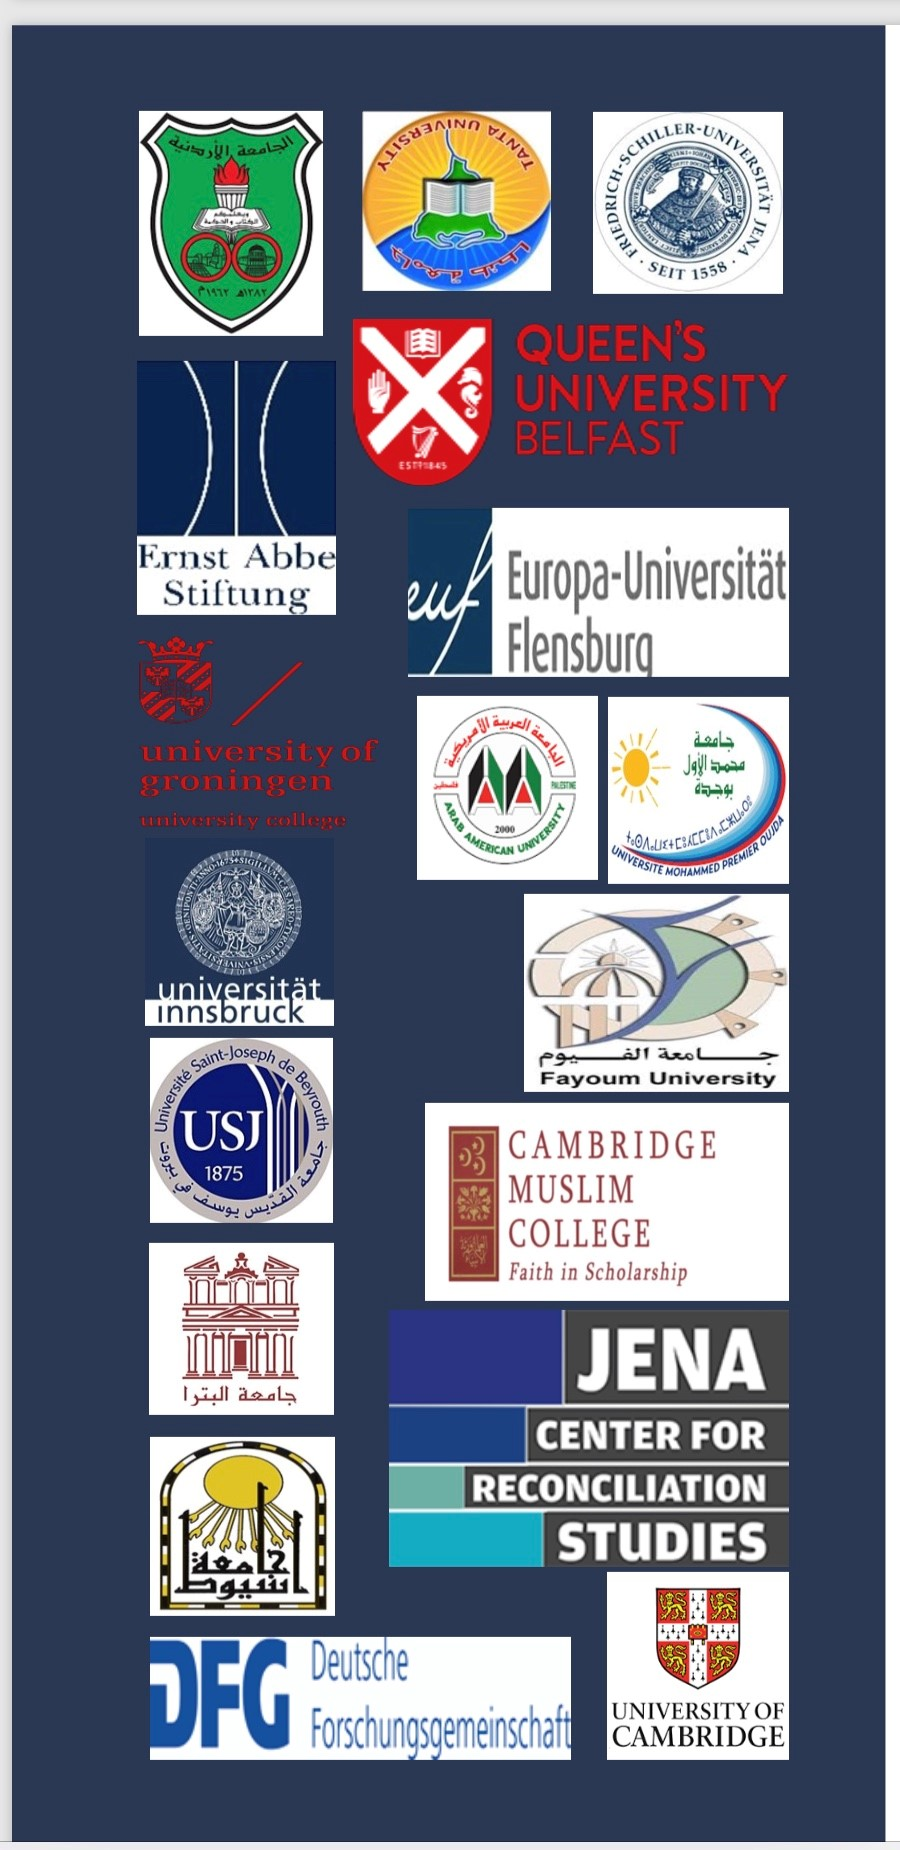 The Academic alliance for Reconciliation and settlement in the Middle East and North Africa.